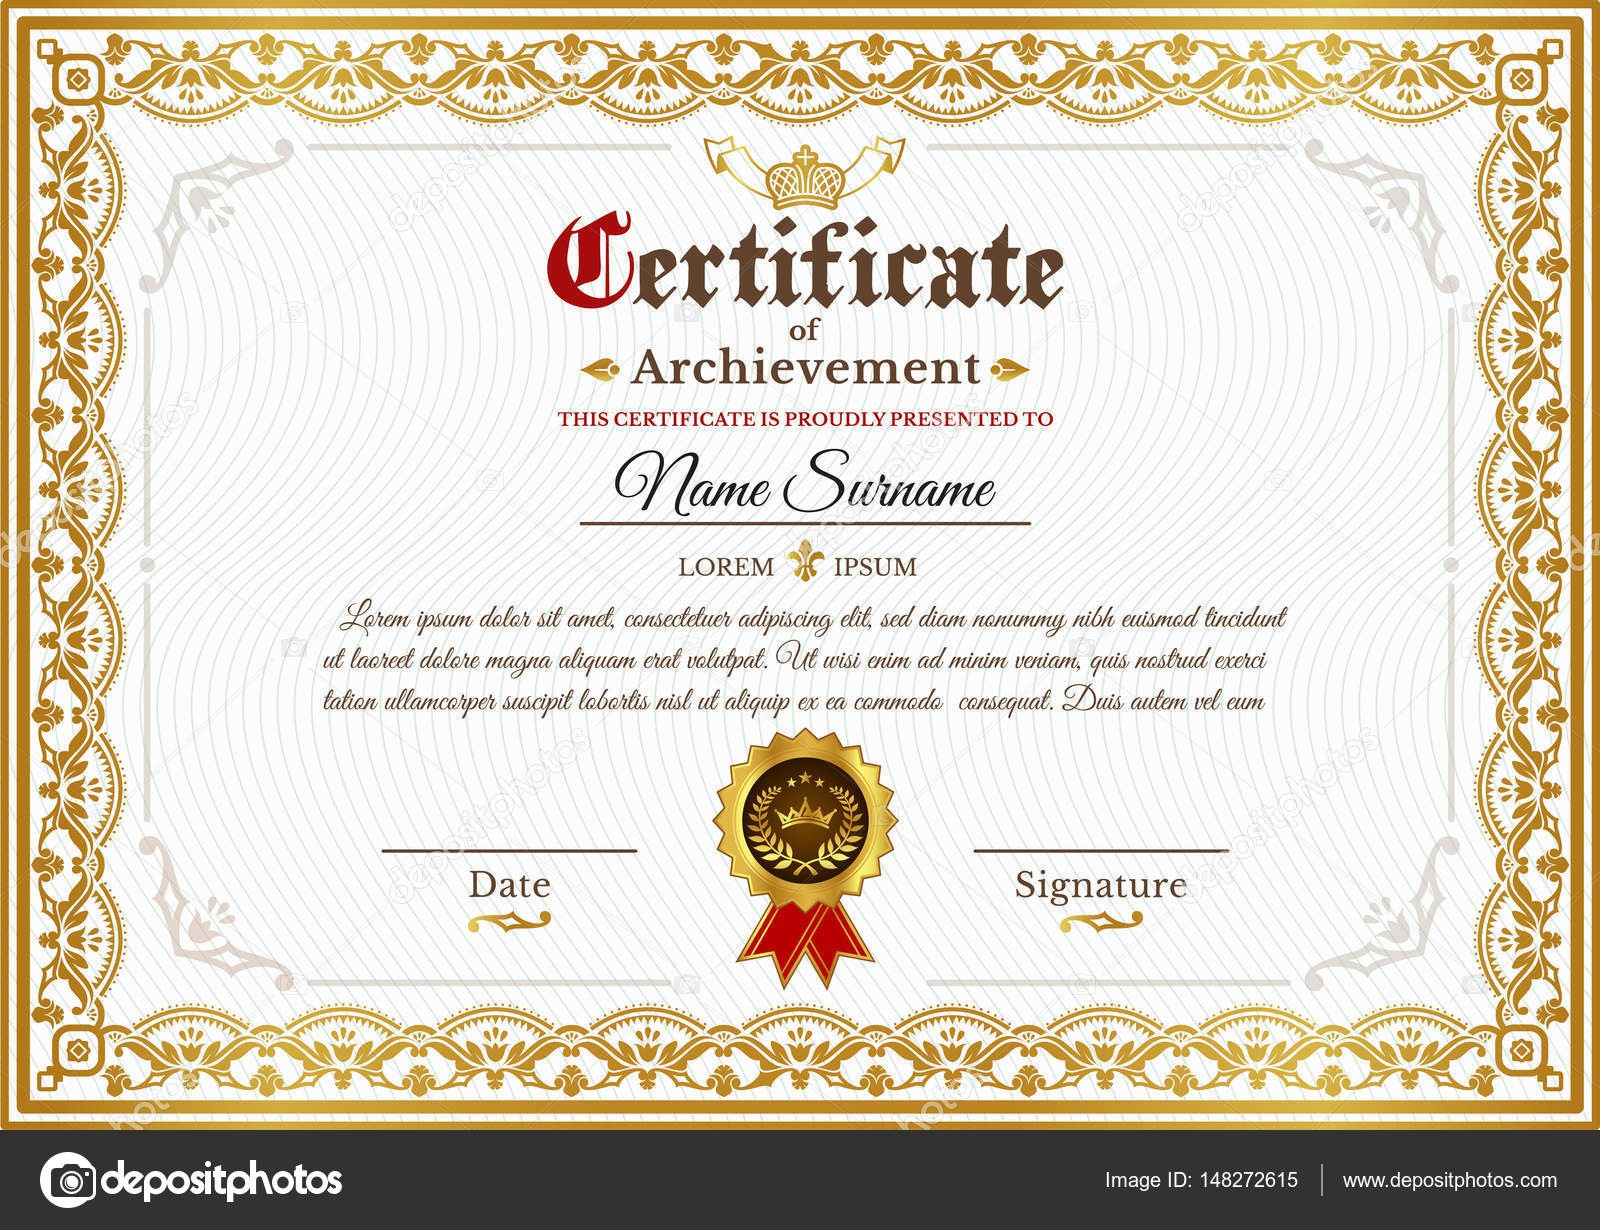 Certificate Background Vector Png 0.